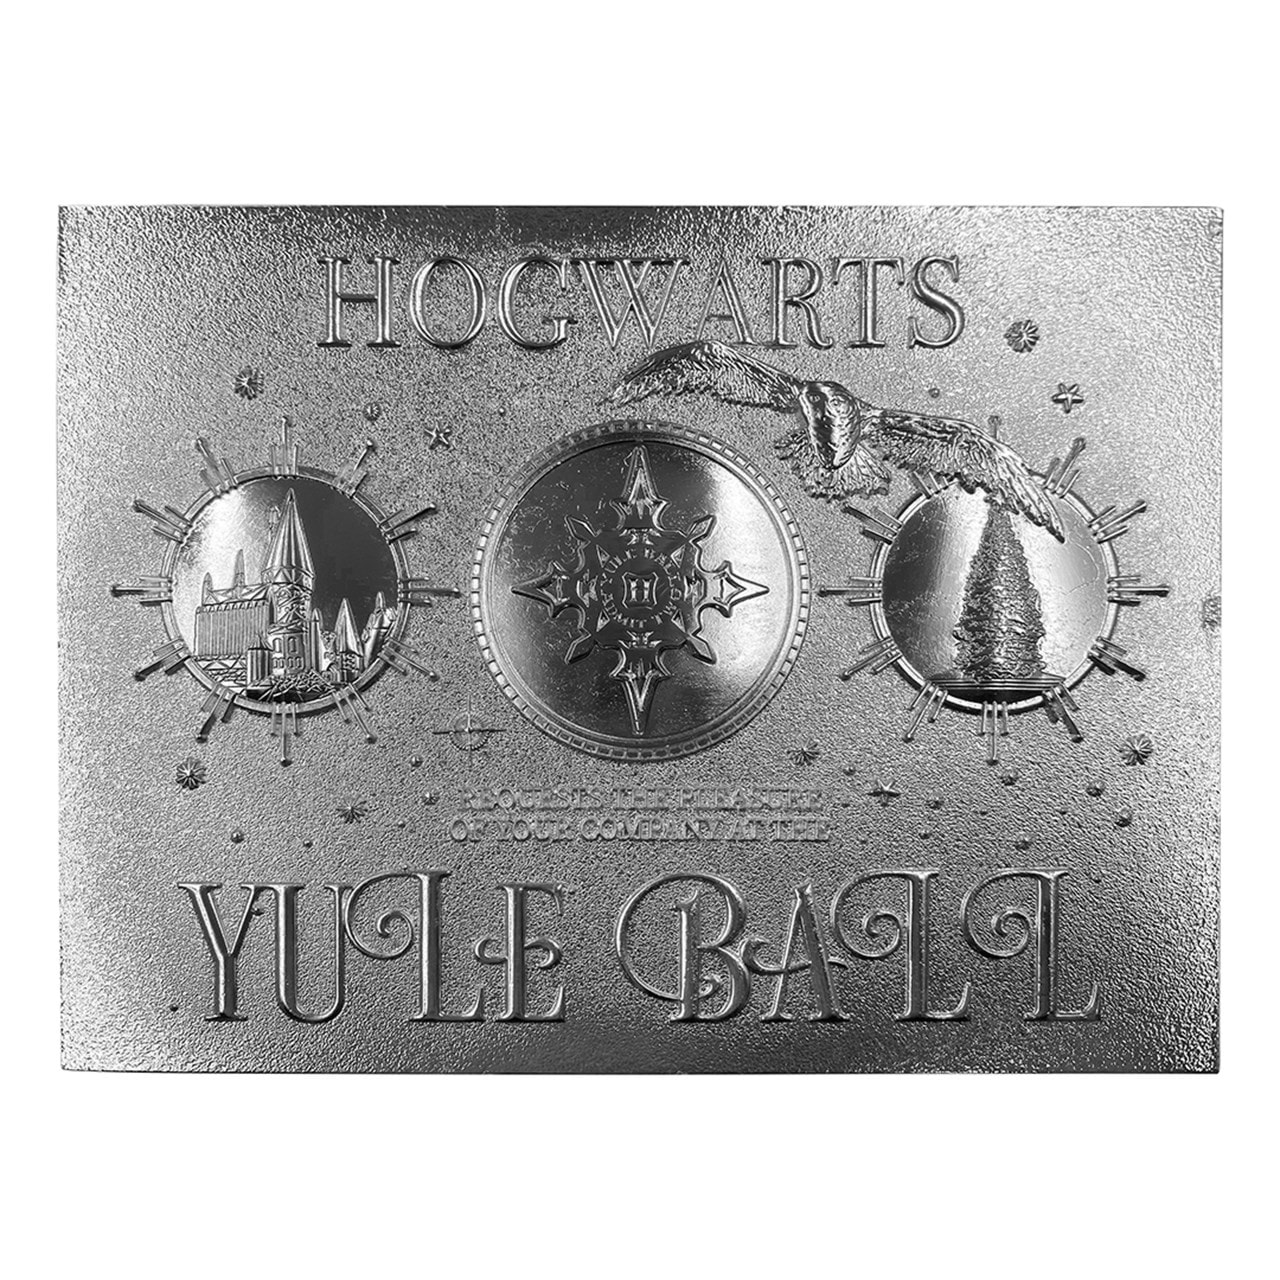 Harry Potter: Silver Plated Yule Ball Ticket Metal Replica (online only) - 2